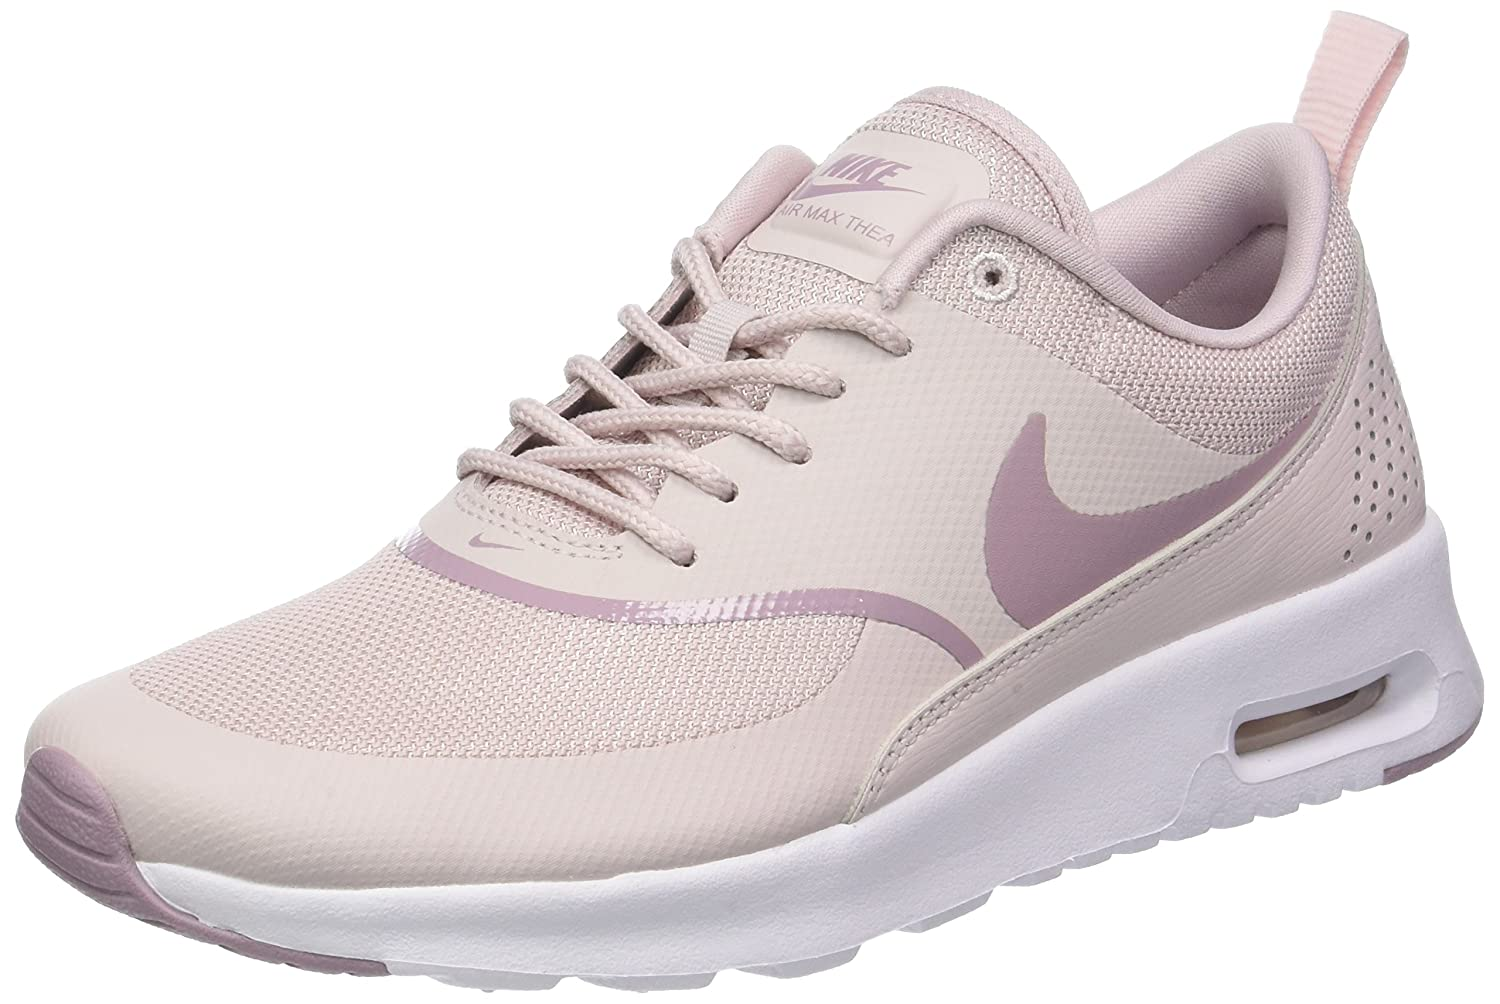 NIKE Women's Air Max Thea Running Shoe B075ZZ41MJ 7 B(M) US|Barely Rose/Elemental Rose